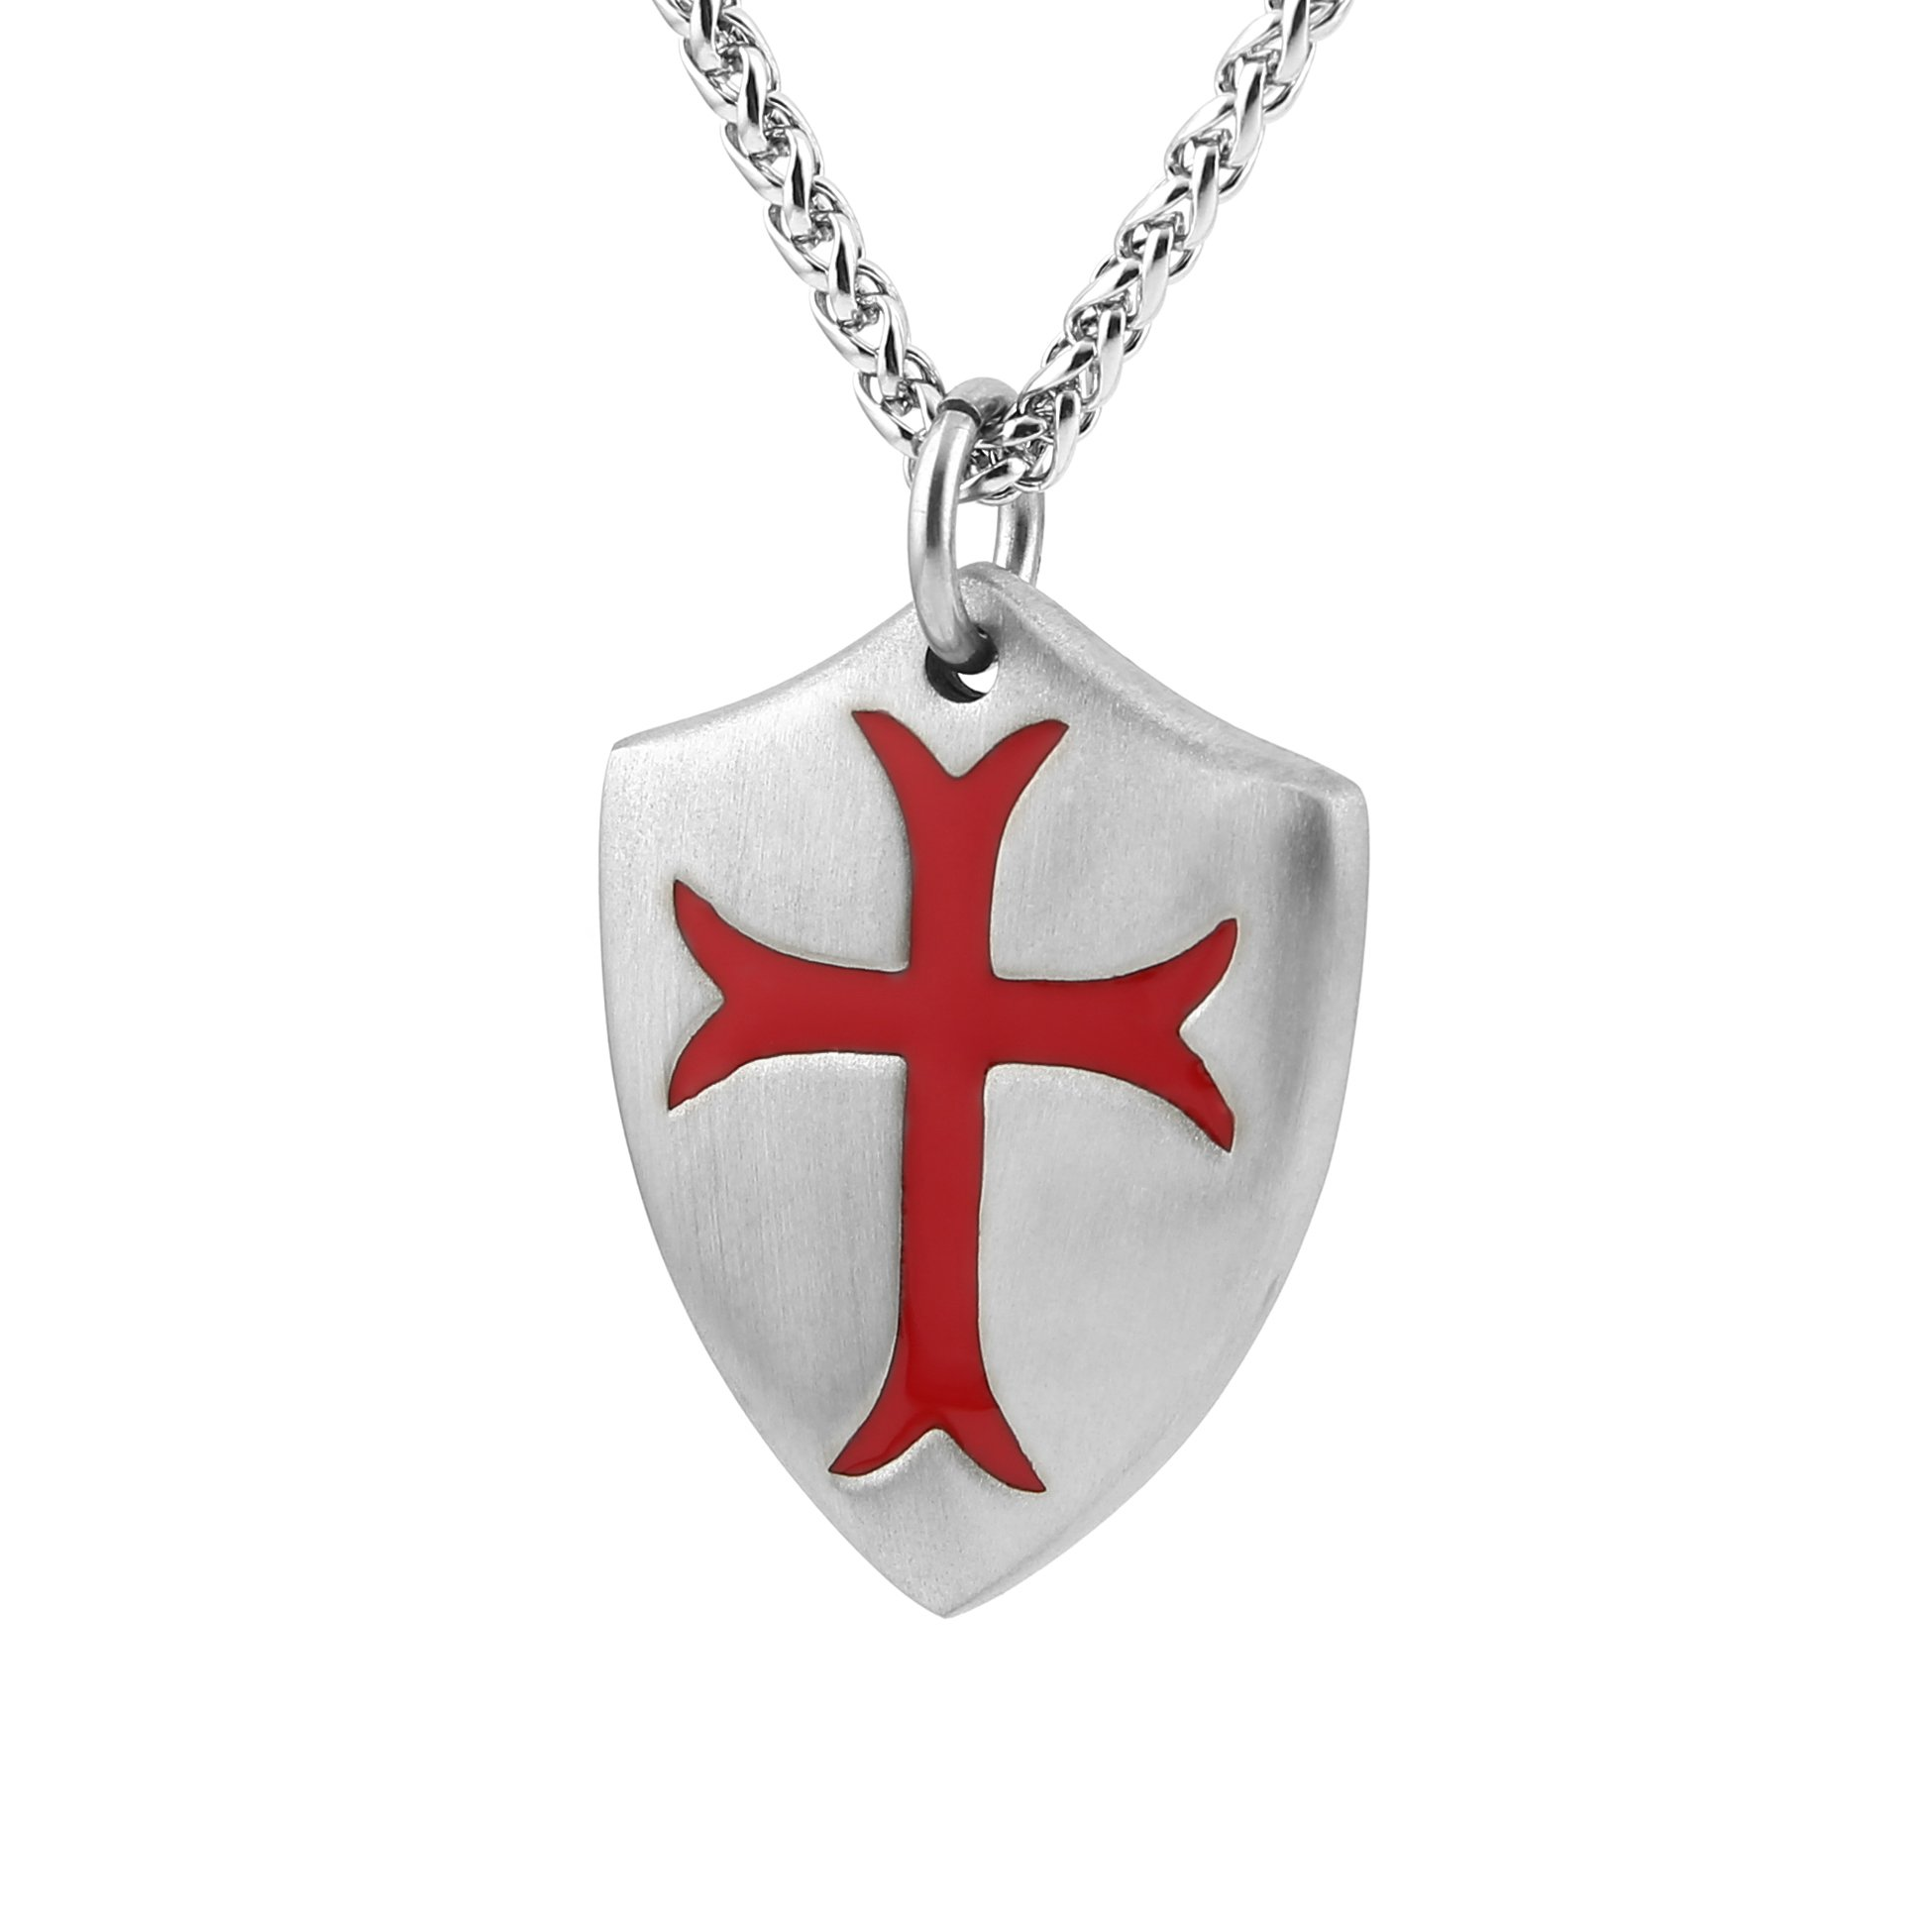 Knights templar cross necklace pendant for men joshua 19 free new knights templar cross joshua 19 pendant necklace with free key chain aloadofball Image collections